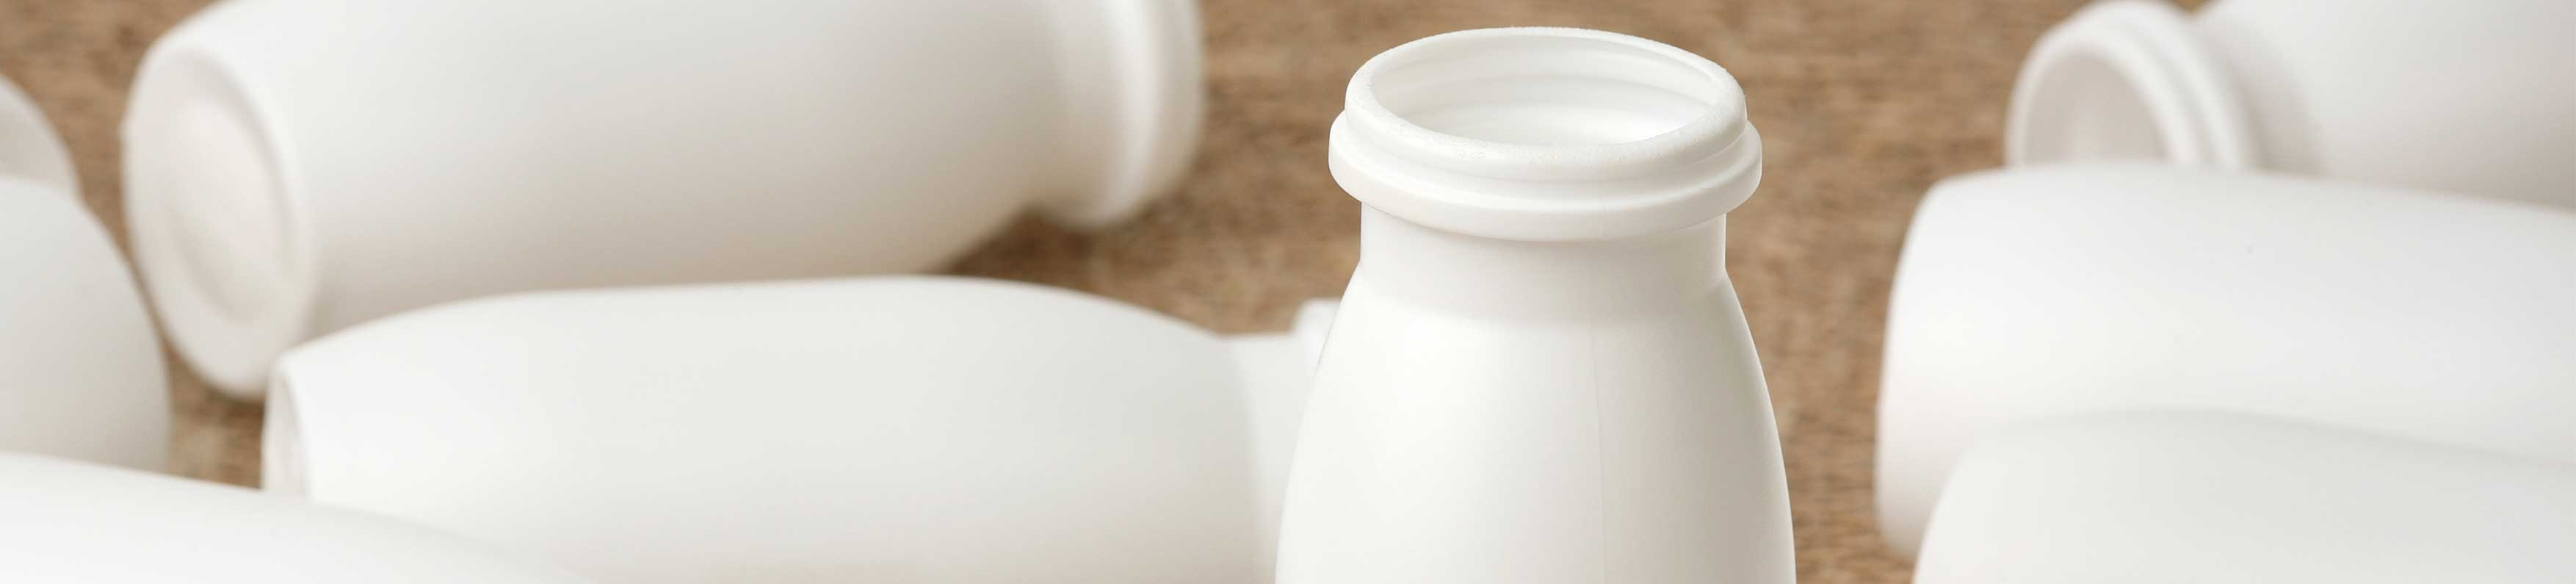 Bottles & Containers Compostable Applications NUREL INZEA Biopolymers